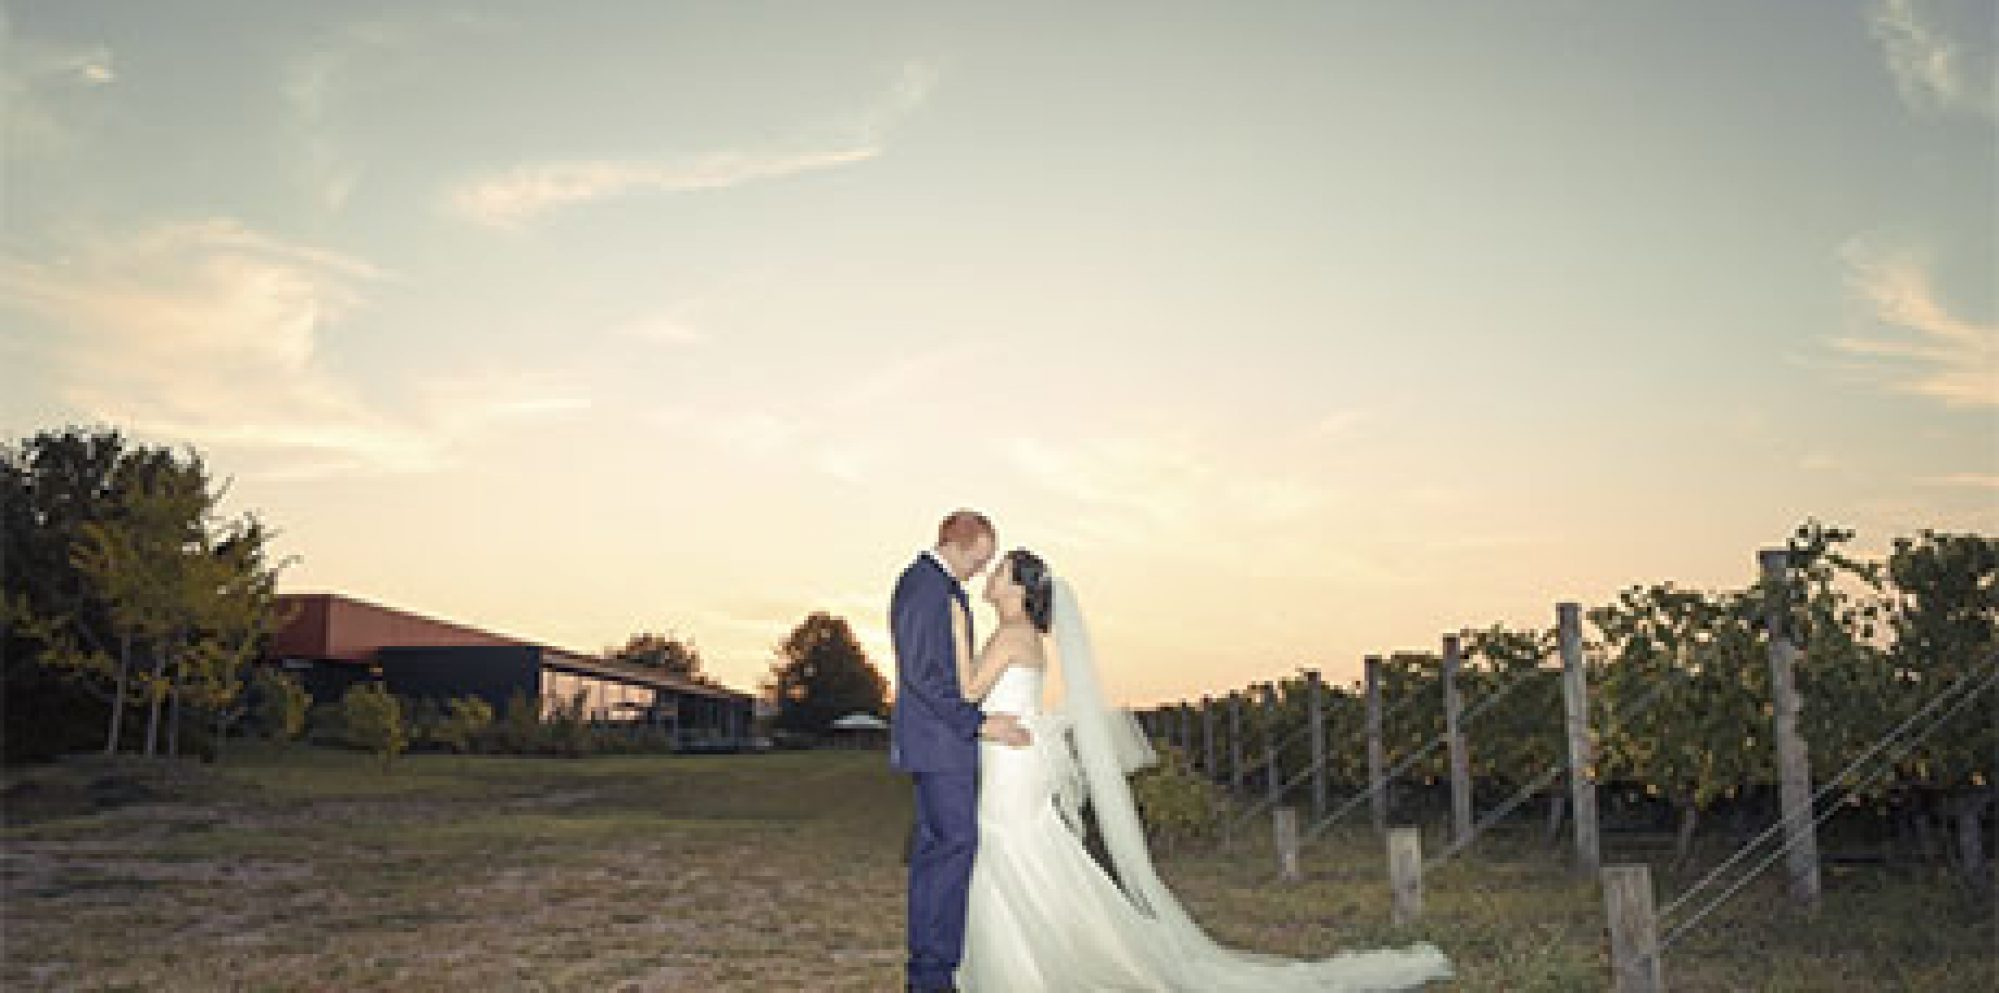 Lily & matt oakridge wines wedding photography